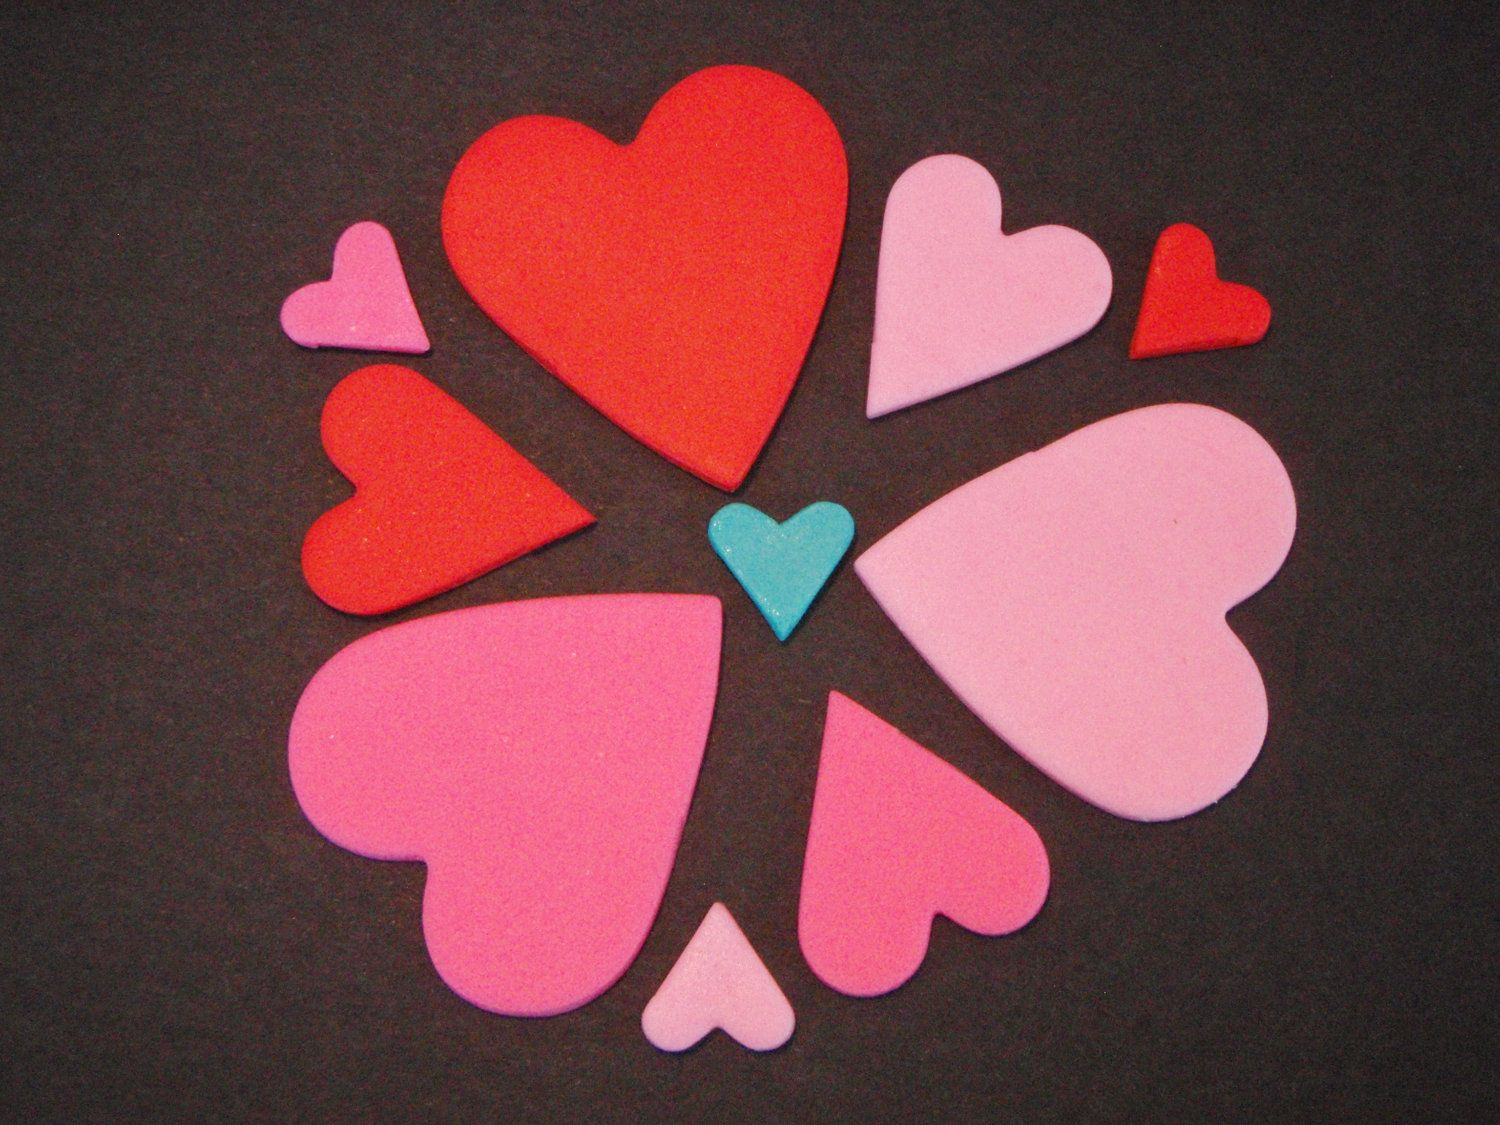 Fondant Heart Decorations for Cupcakes or Cakes